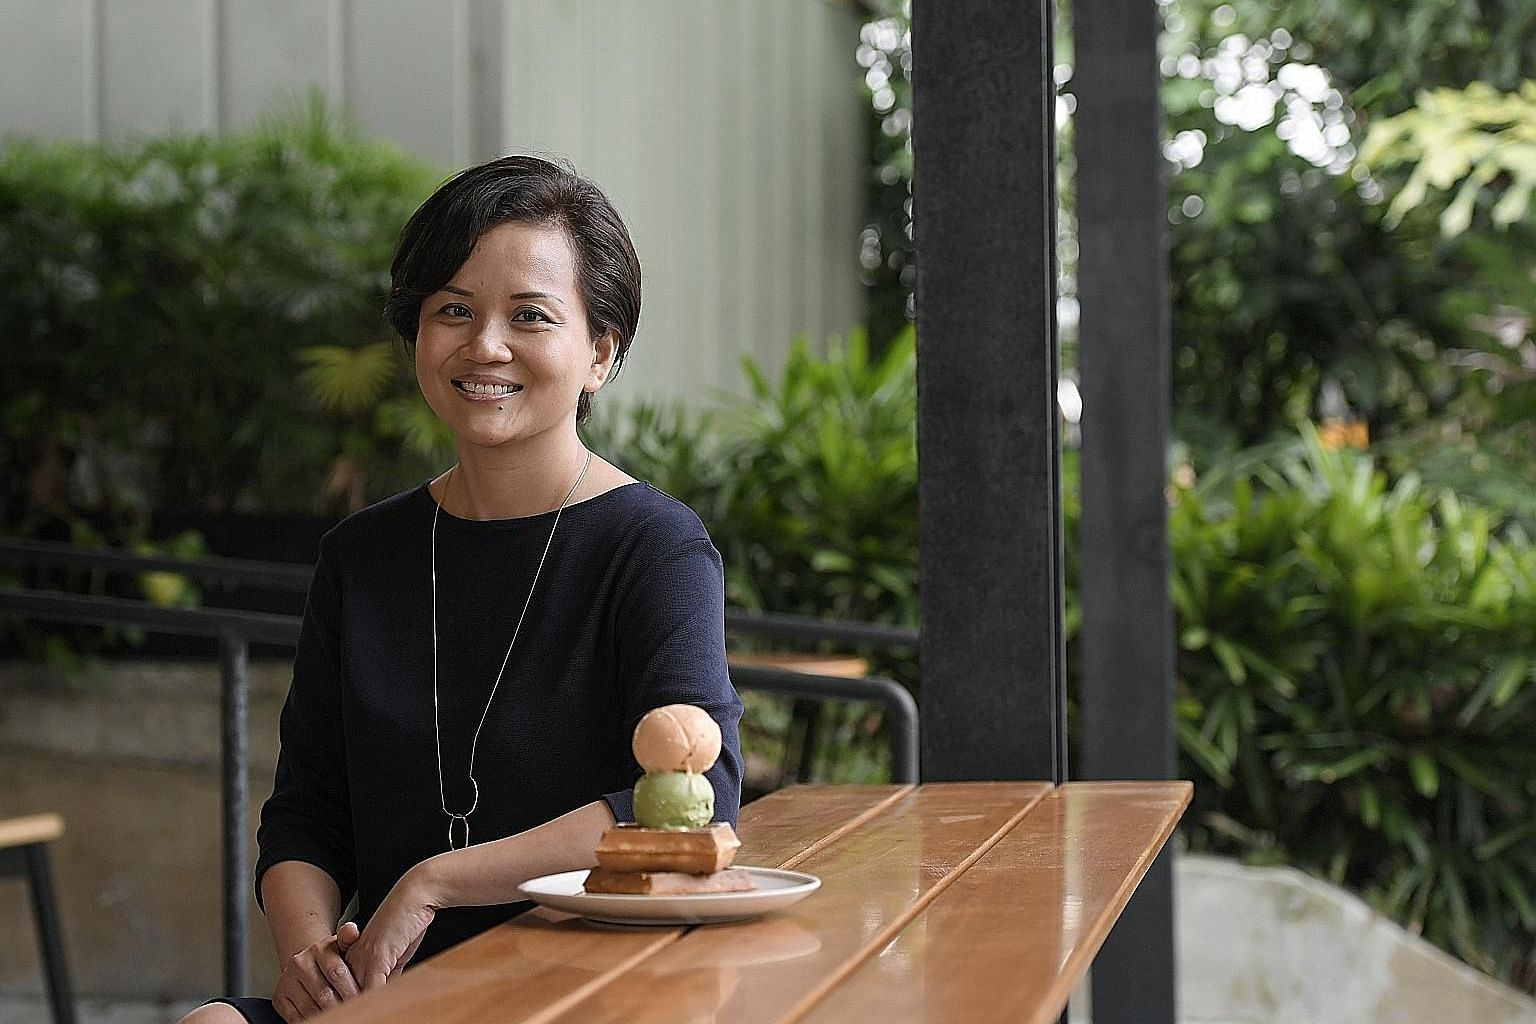 Ms Audrey Wang started baking because she says her mother, a non-baker, could not critique her skills.